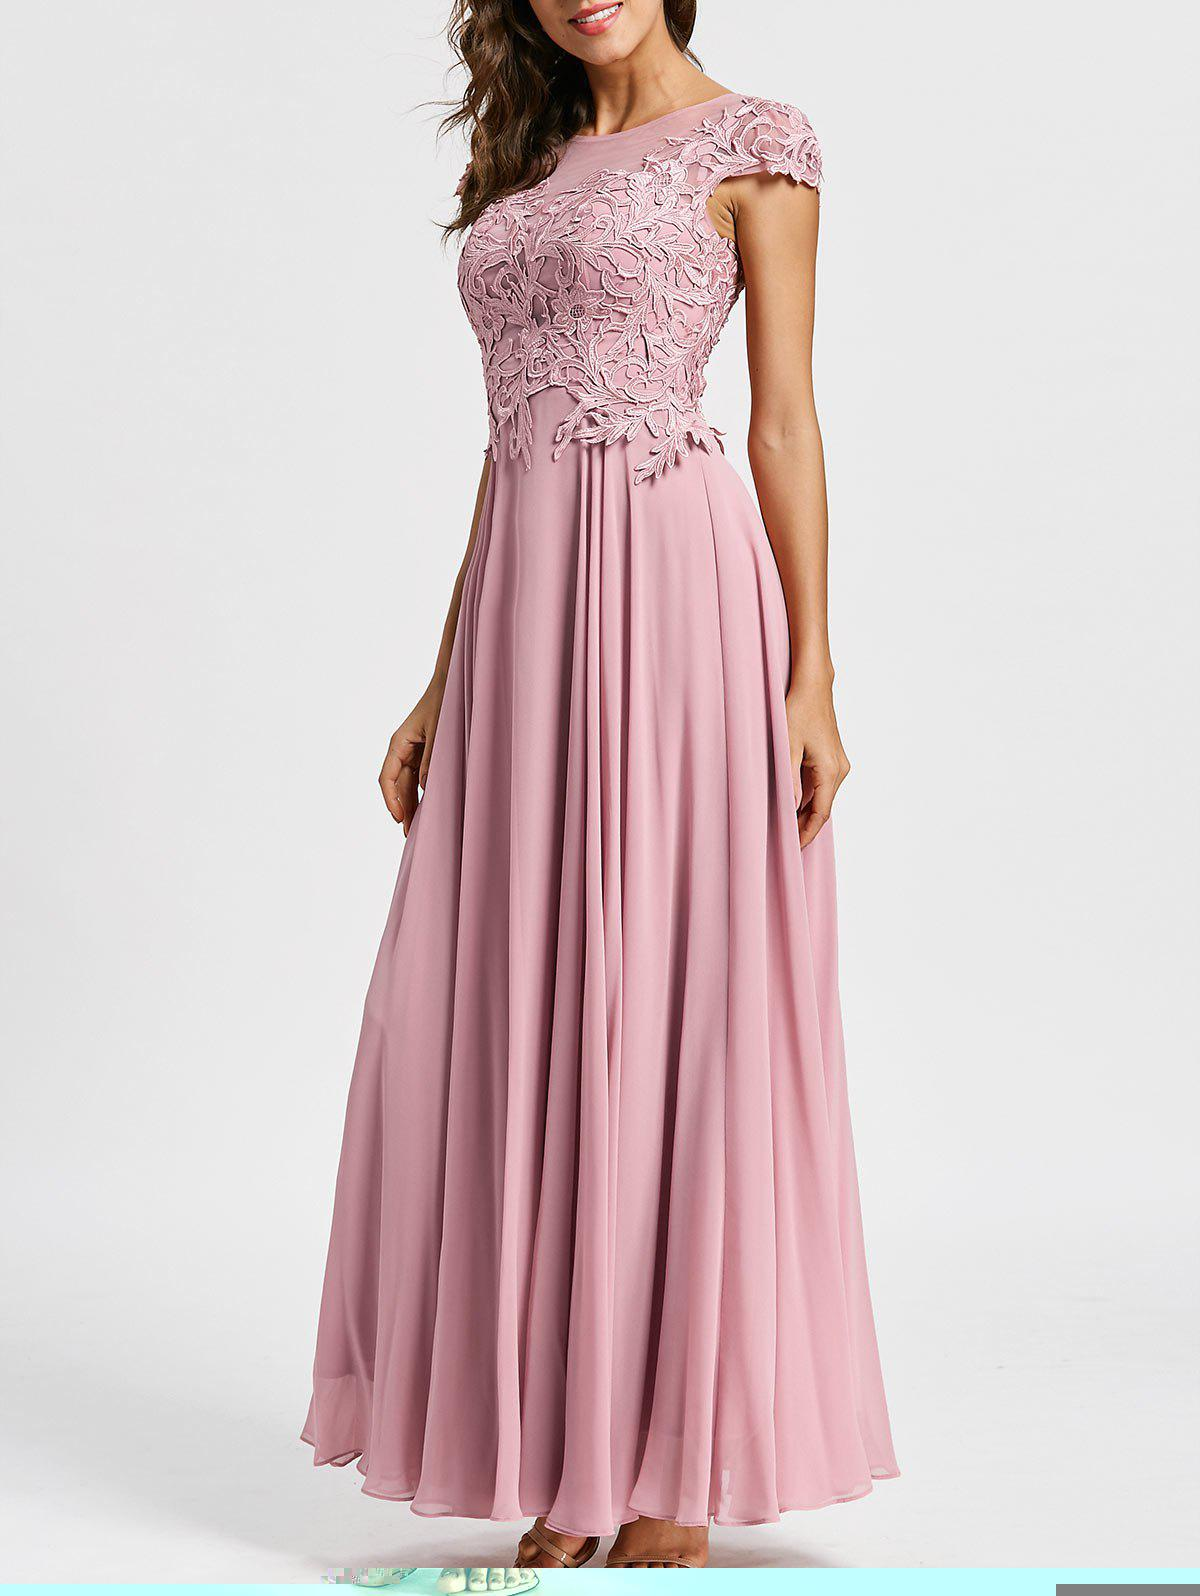 Floral Applique Maxi Formal Evening Dress - LIGHT PINK 2XL